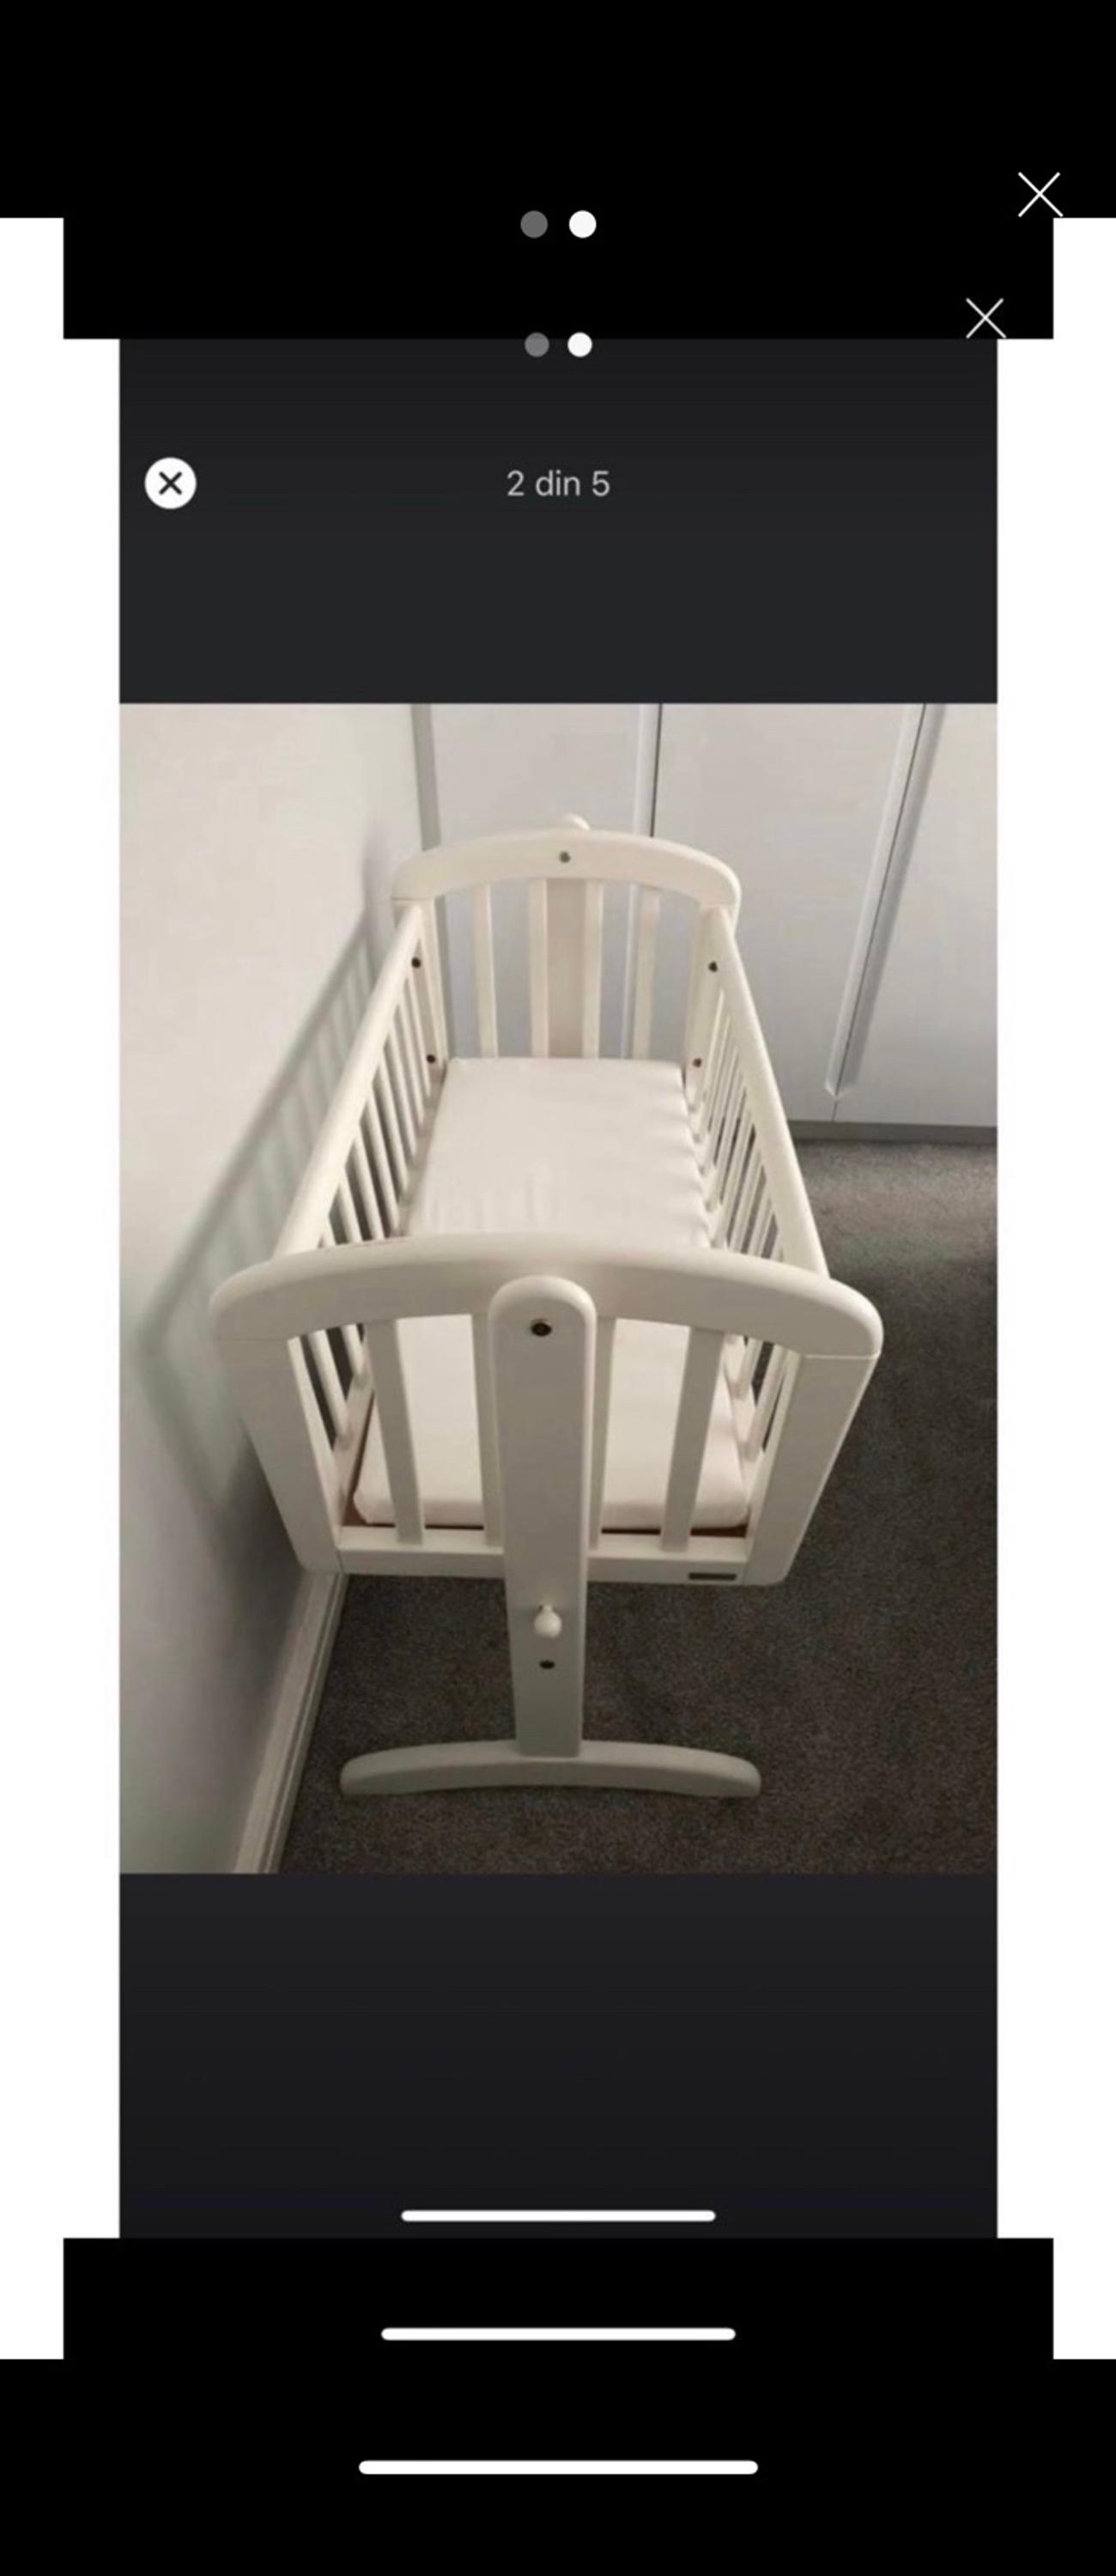 We found this useful before transitioning to a full size cot. Much more snug for a newborn/young baby and ideal for bedside. Has a few marks but does not affect use.  Fits in hatchback car with seats down without dismantling.